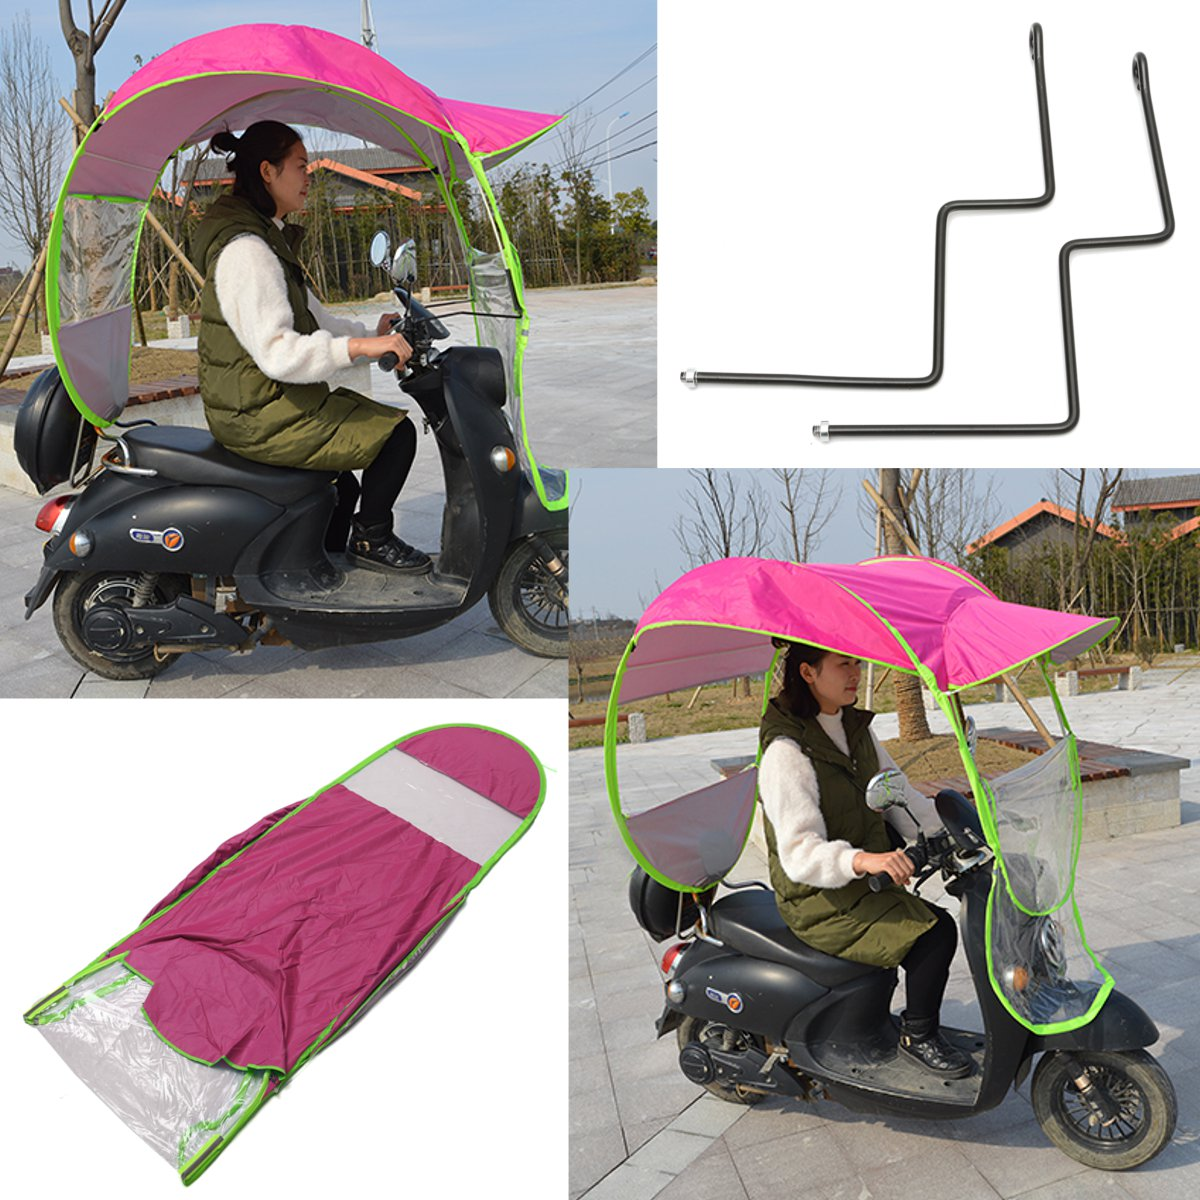 Protective Gear Motorcycle Rider Raincoat 2.8*0.8*0.7m Motorbike Scooter Rain Cover Motorcycle Electric Sun Shade Vehicle Umbrella Raincoat Poncho Cover Shelter Moderate Price